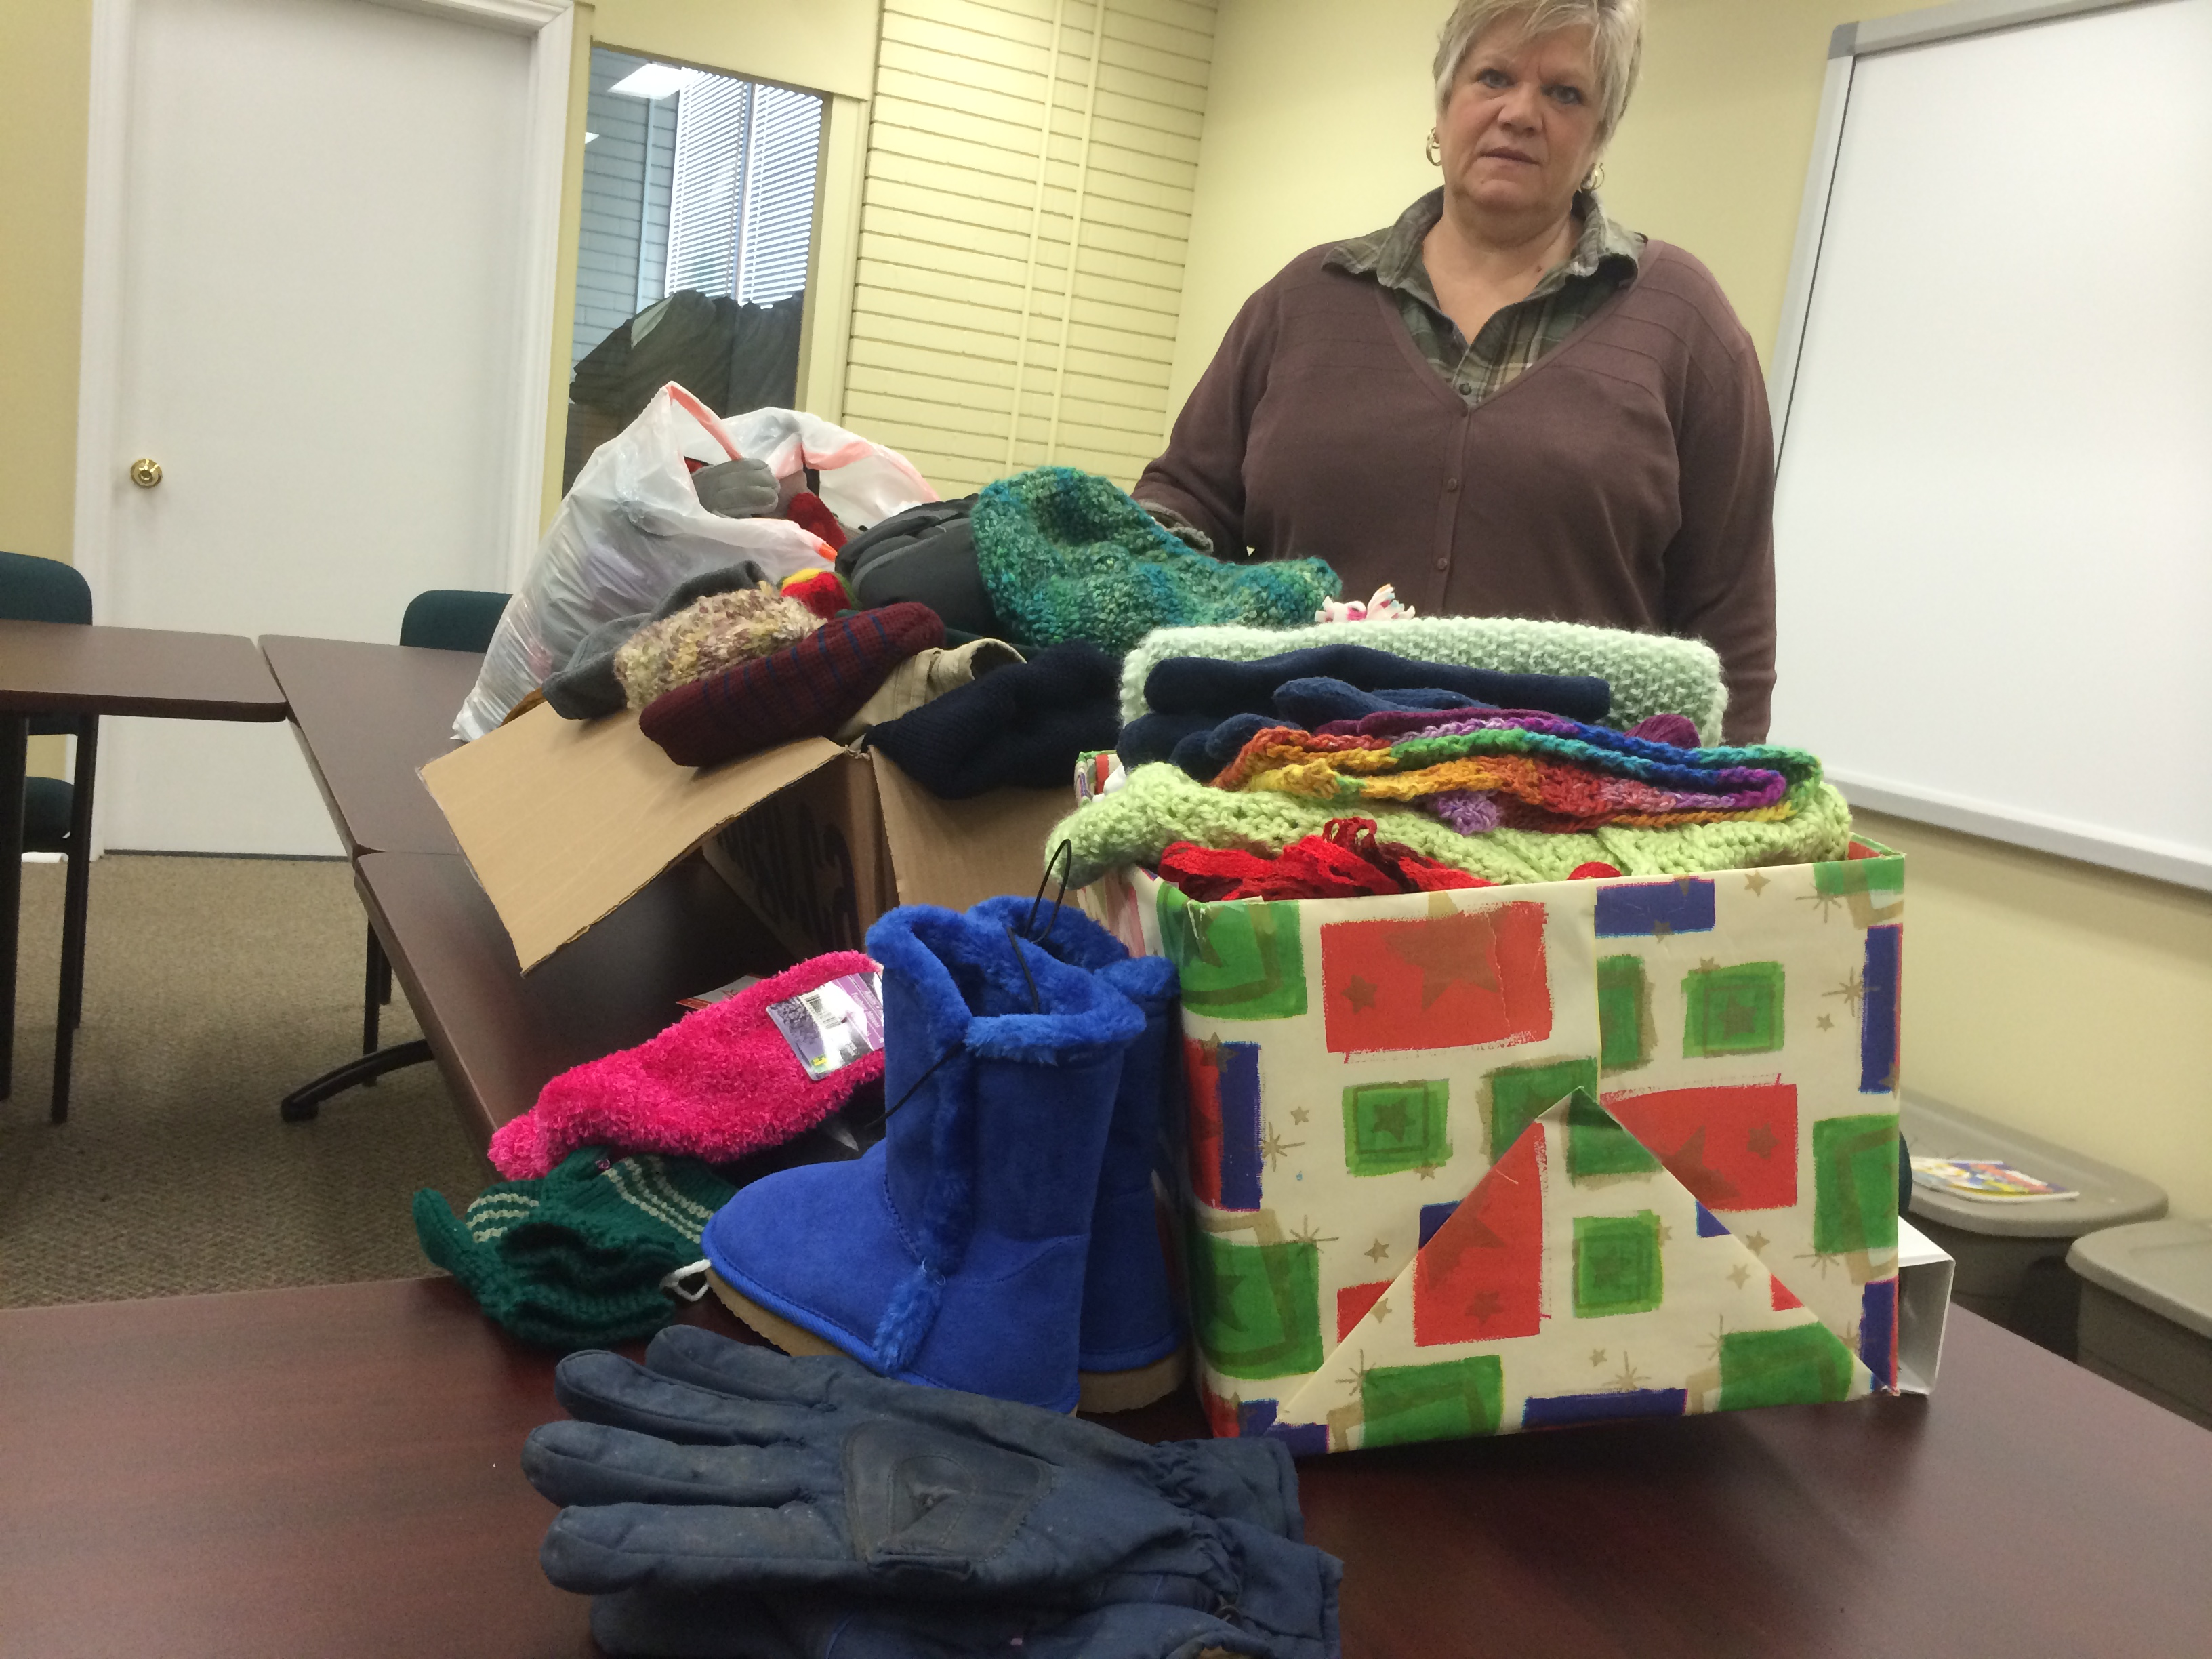 Chatham-Kent Salvation Army Family Services Coordinator Rhonda Dickson stands by donated mittens, scarves and toques at their offices at 19 Raleigh St. in Chatham on February 12, 2015. (Photo by Ricardo Veneza)